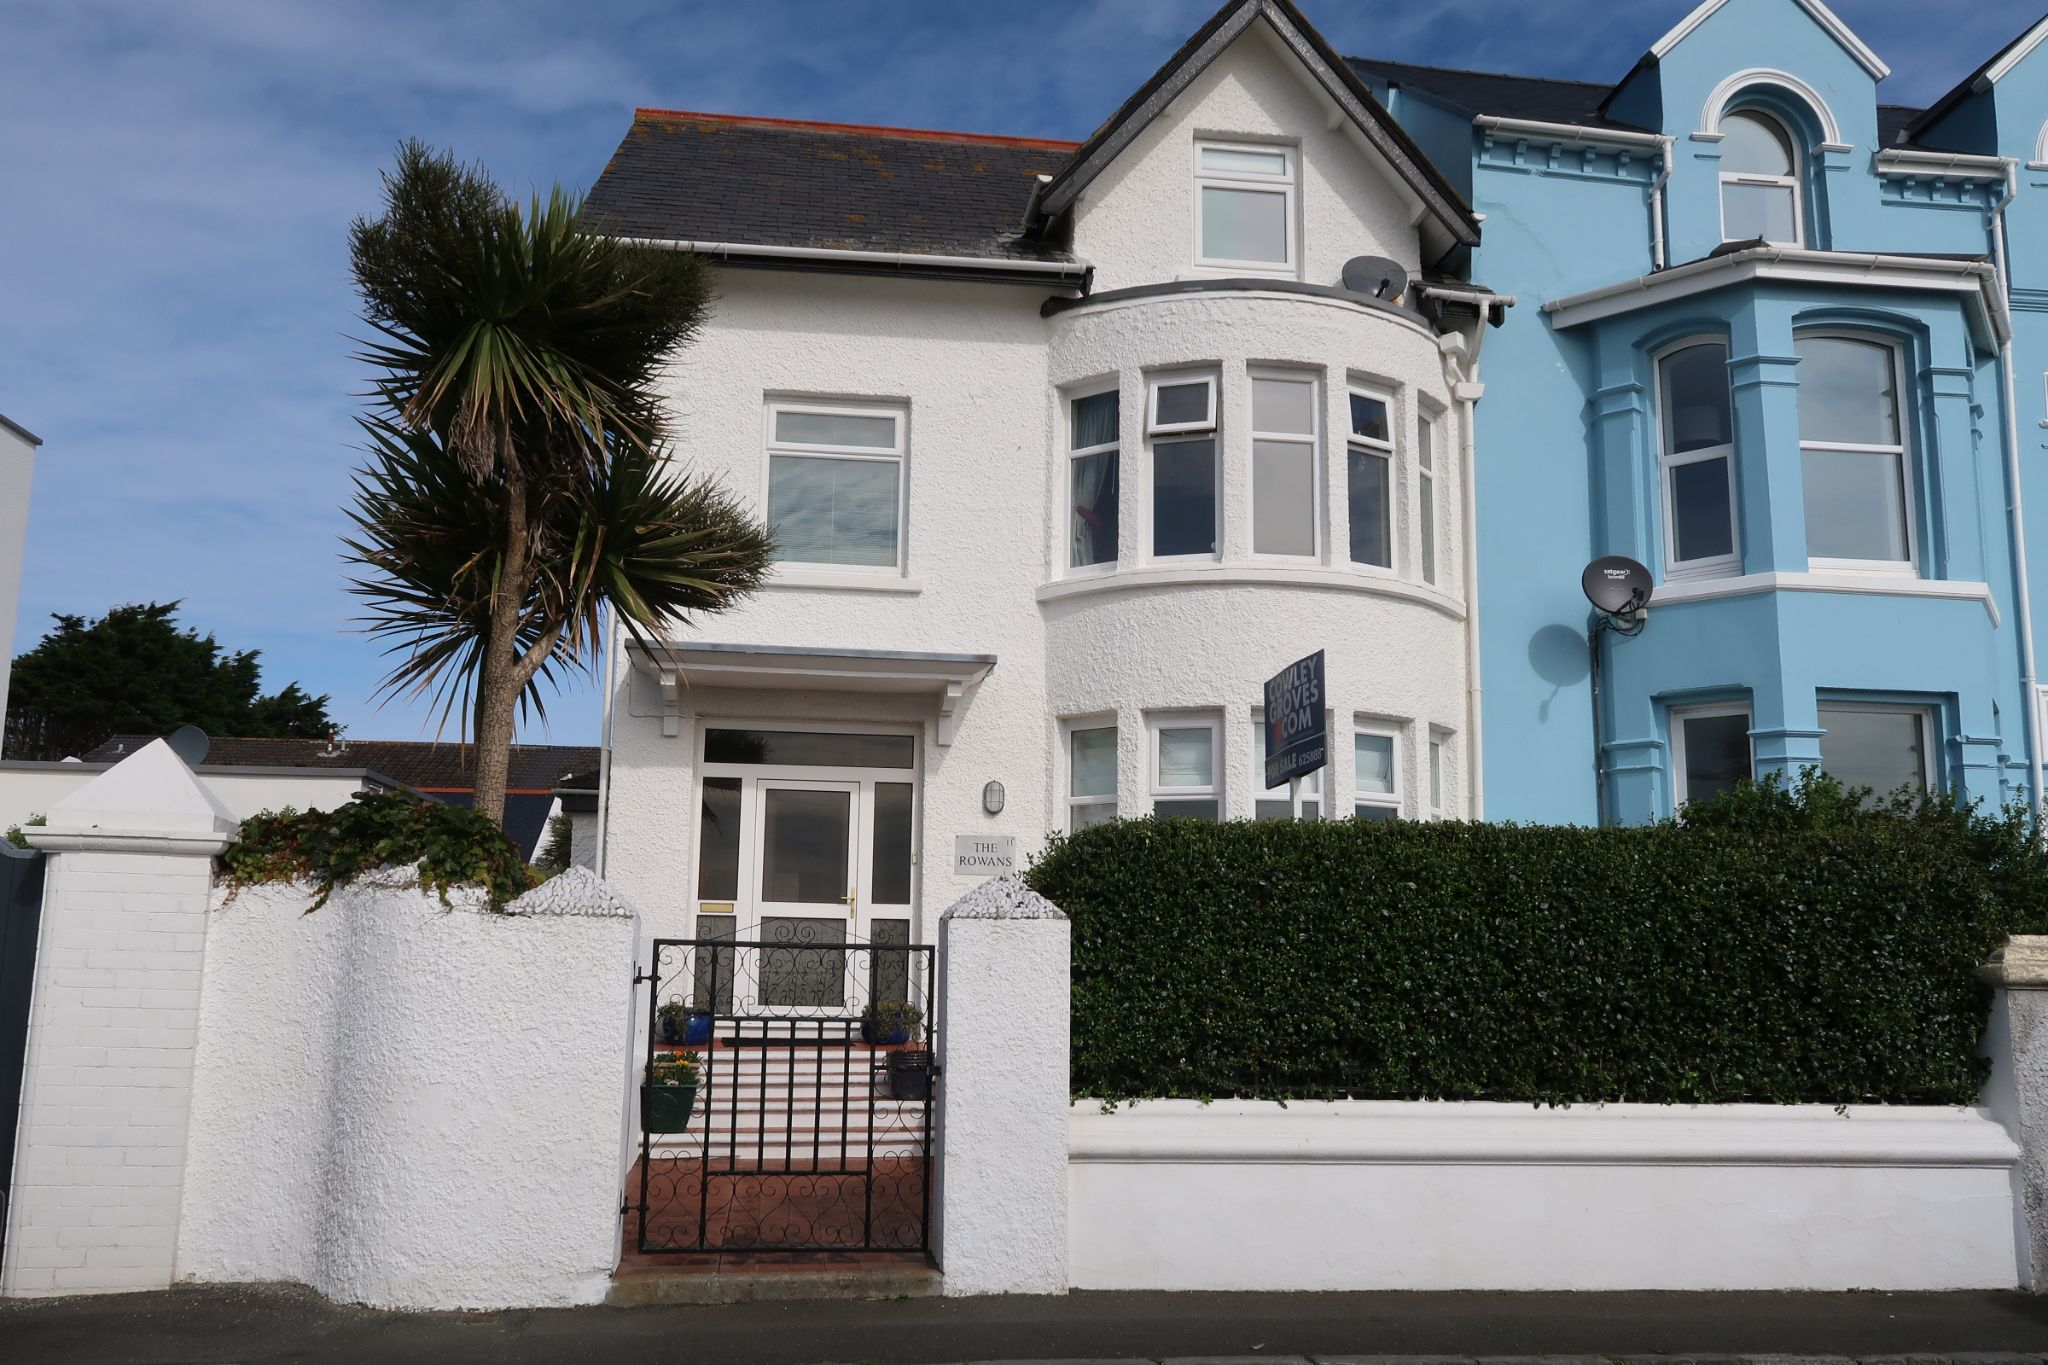 6 bedroom end terraced house SSTC in Castletown - Photograph 1